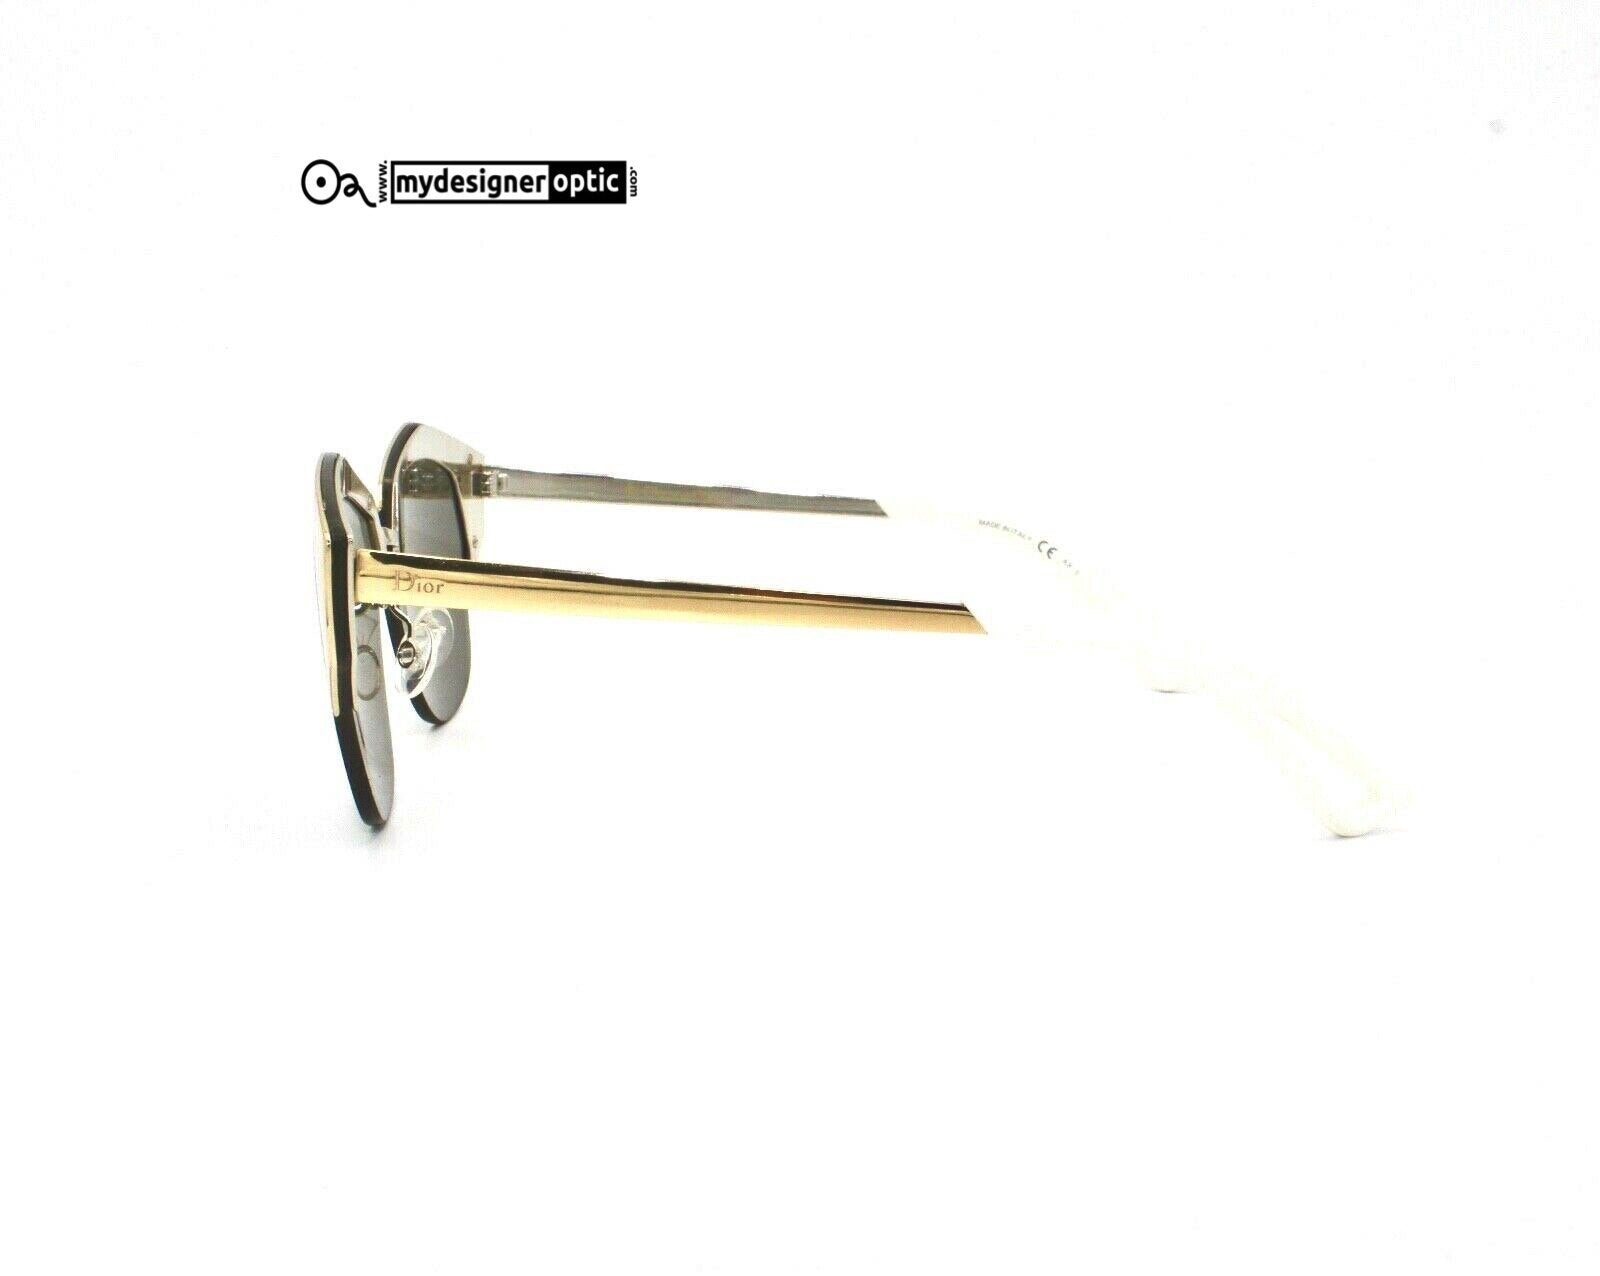 Christian Dior Sunglasses 1206J 55 11 150 Made in Italy - Mydesigneroptic